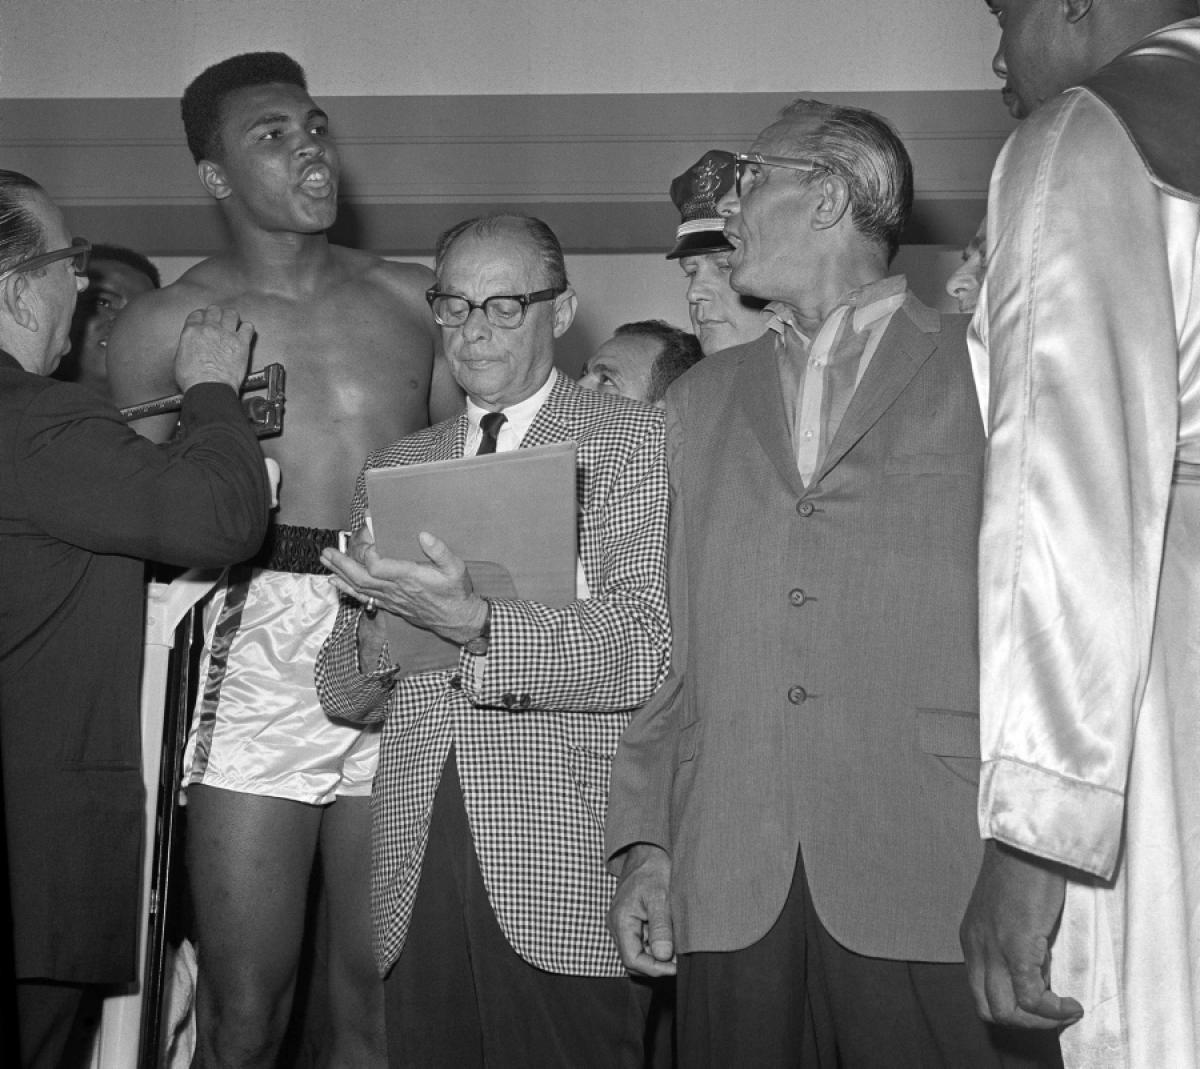 THE NIGHT THE COW CUT-UP THE BUTCHER | CASSIUS CLAY VS. SONNY LISTON, 1964